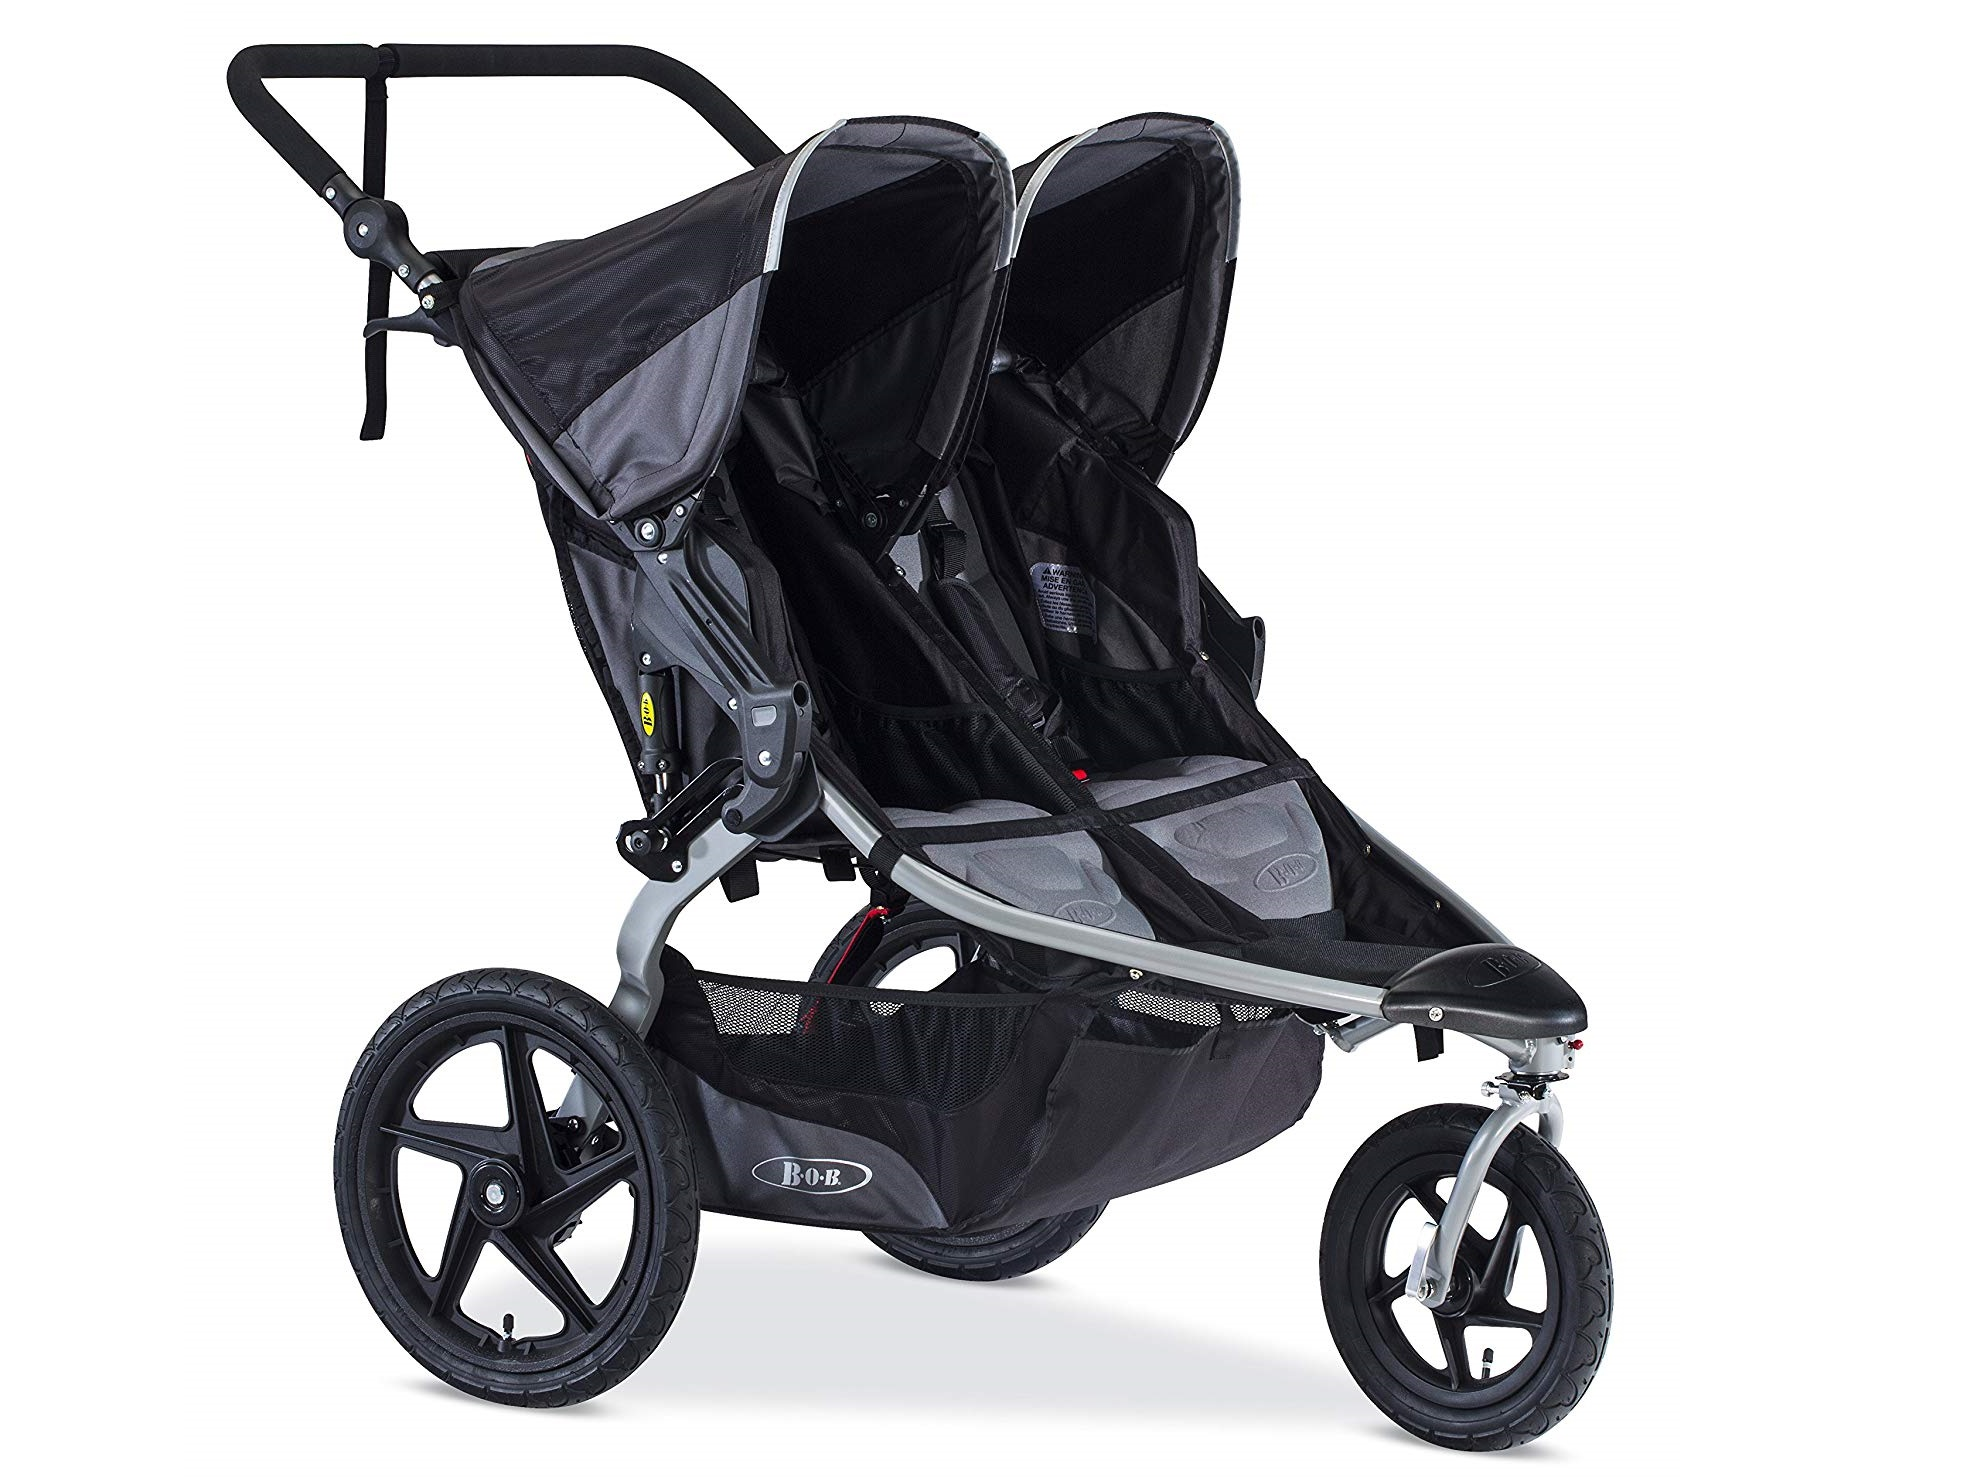 BOB Strollers Defective With Potential for Injury